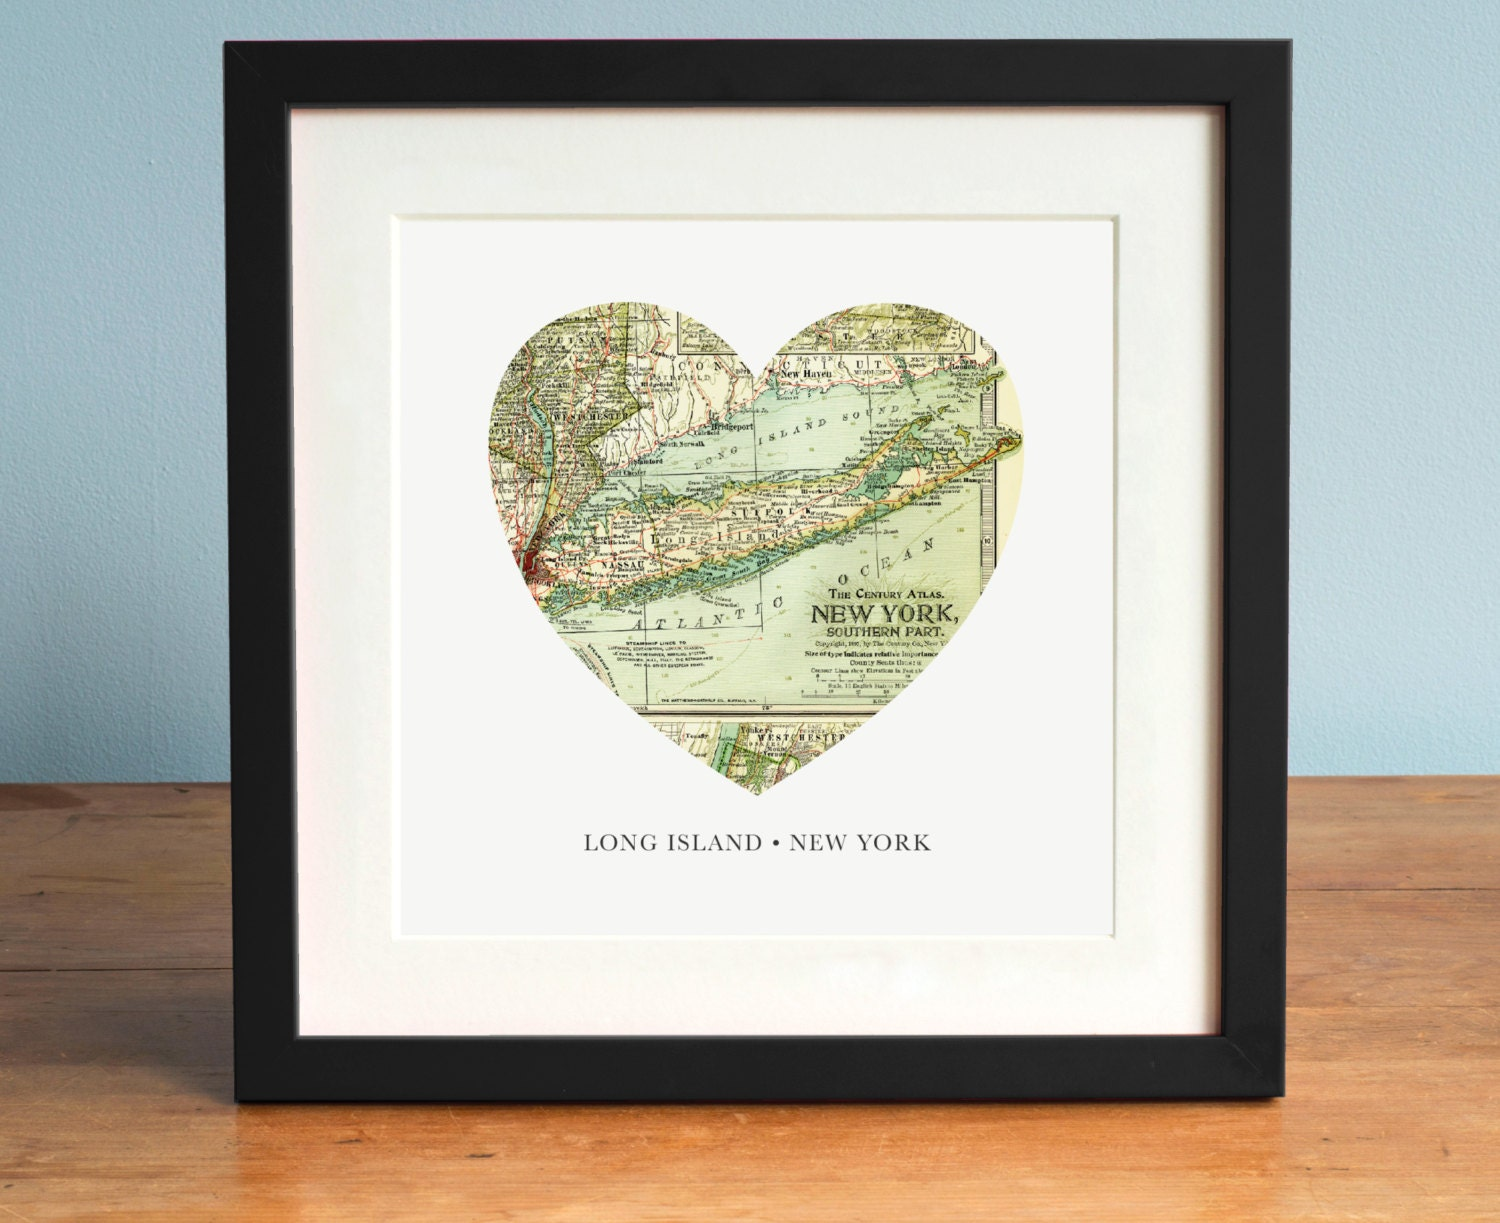 Long Island Map Long Island New York Map Heart Map Vintage